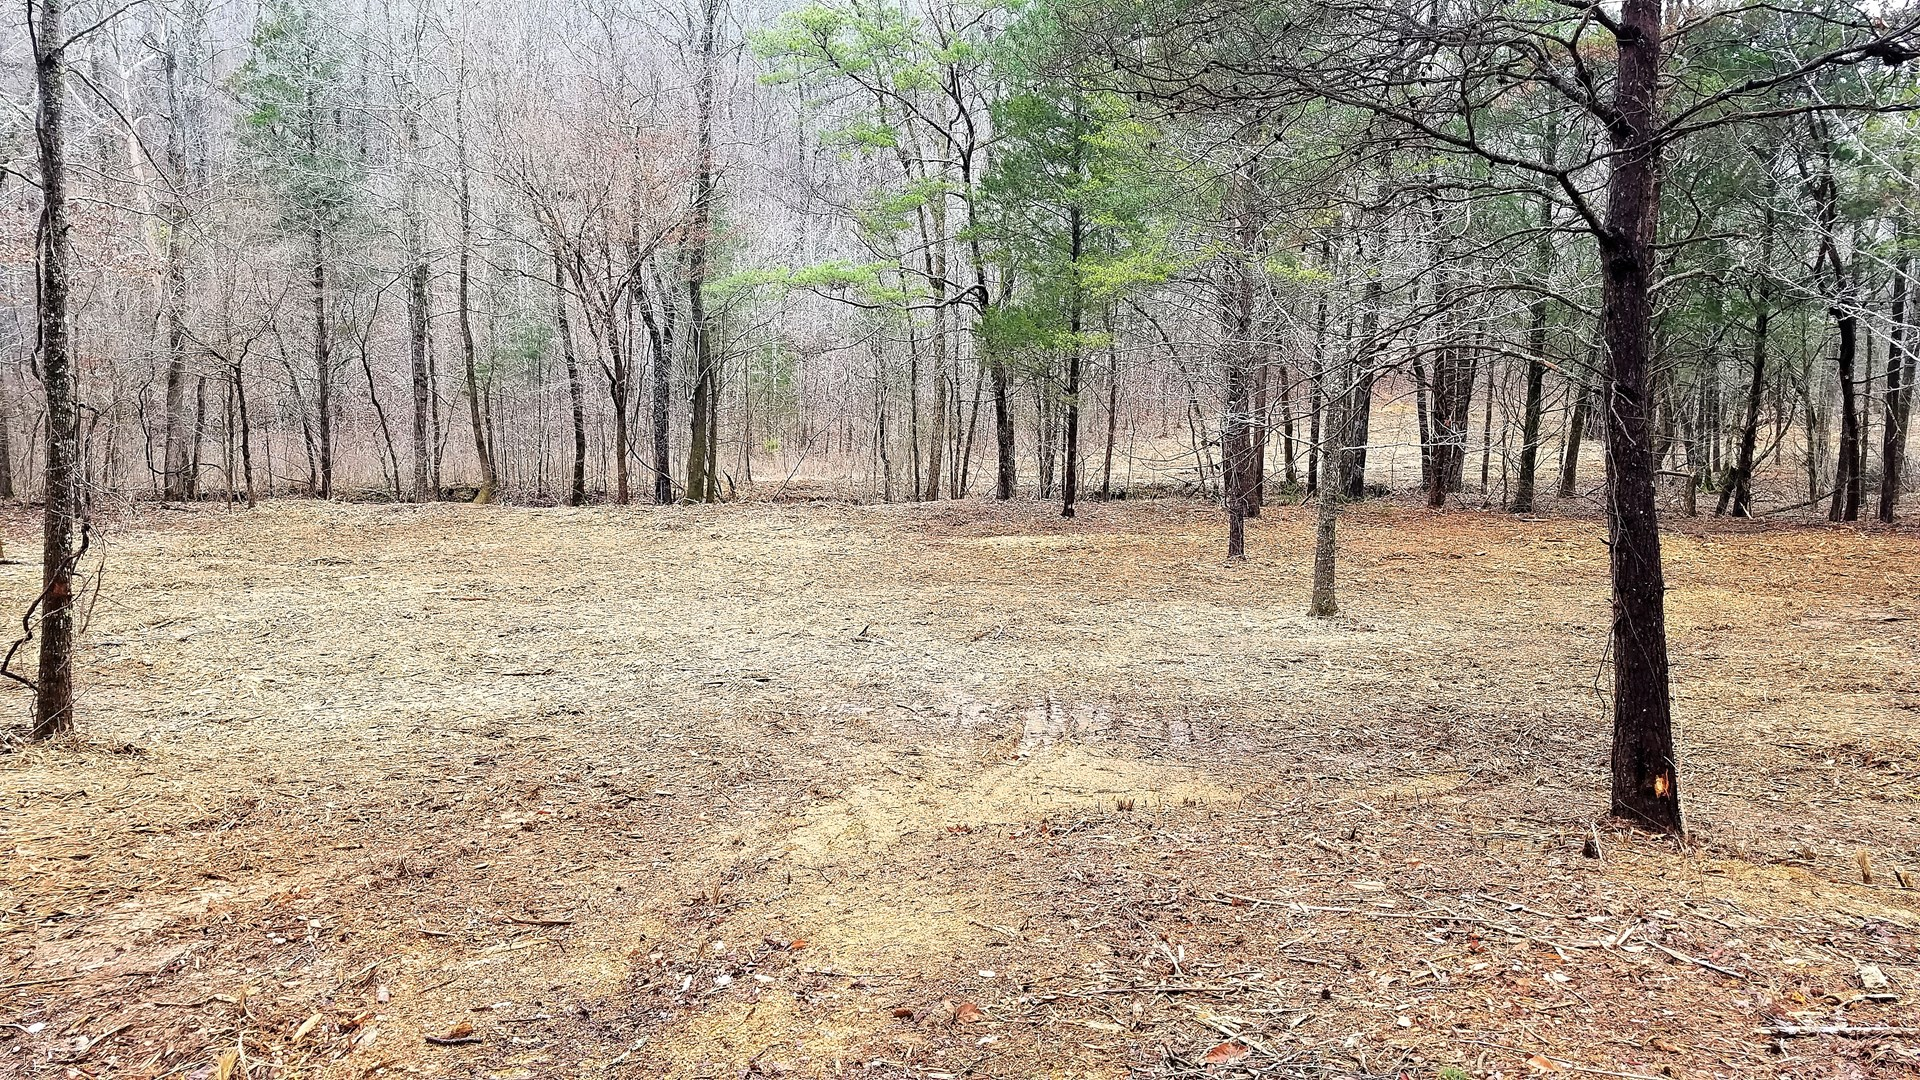 2.5 Acres Vacant Unrestricted Land w/Utilities Available